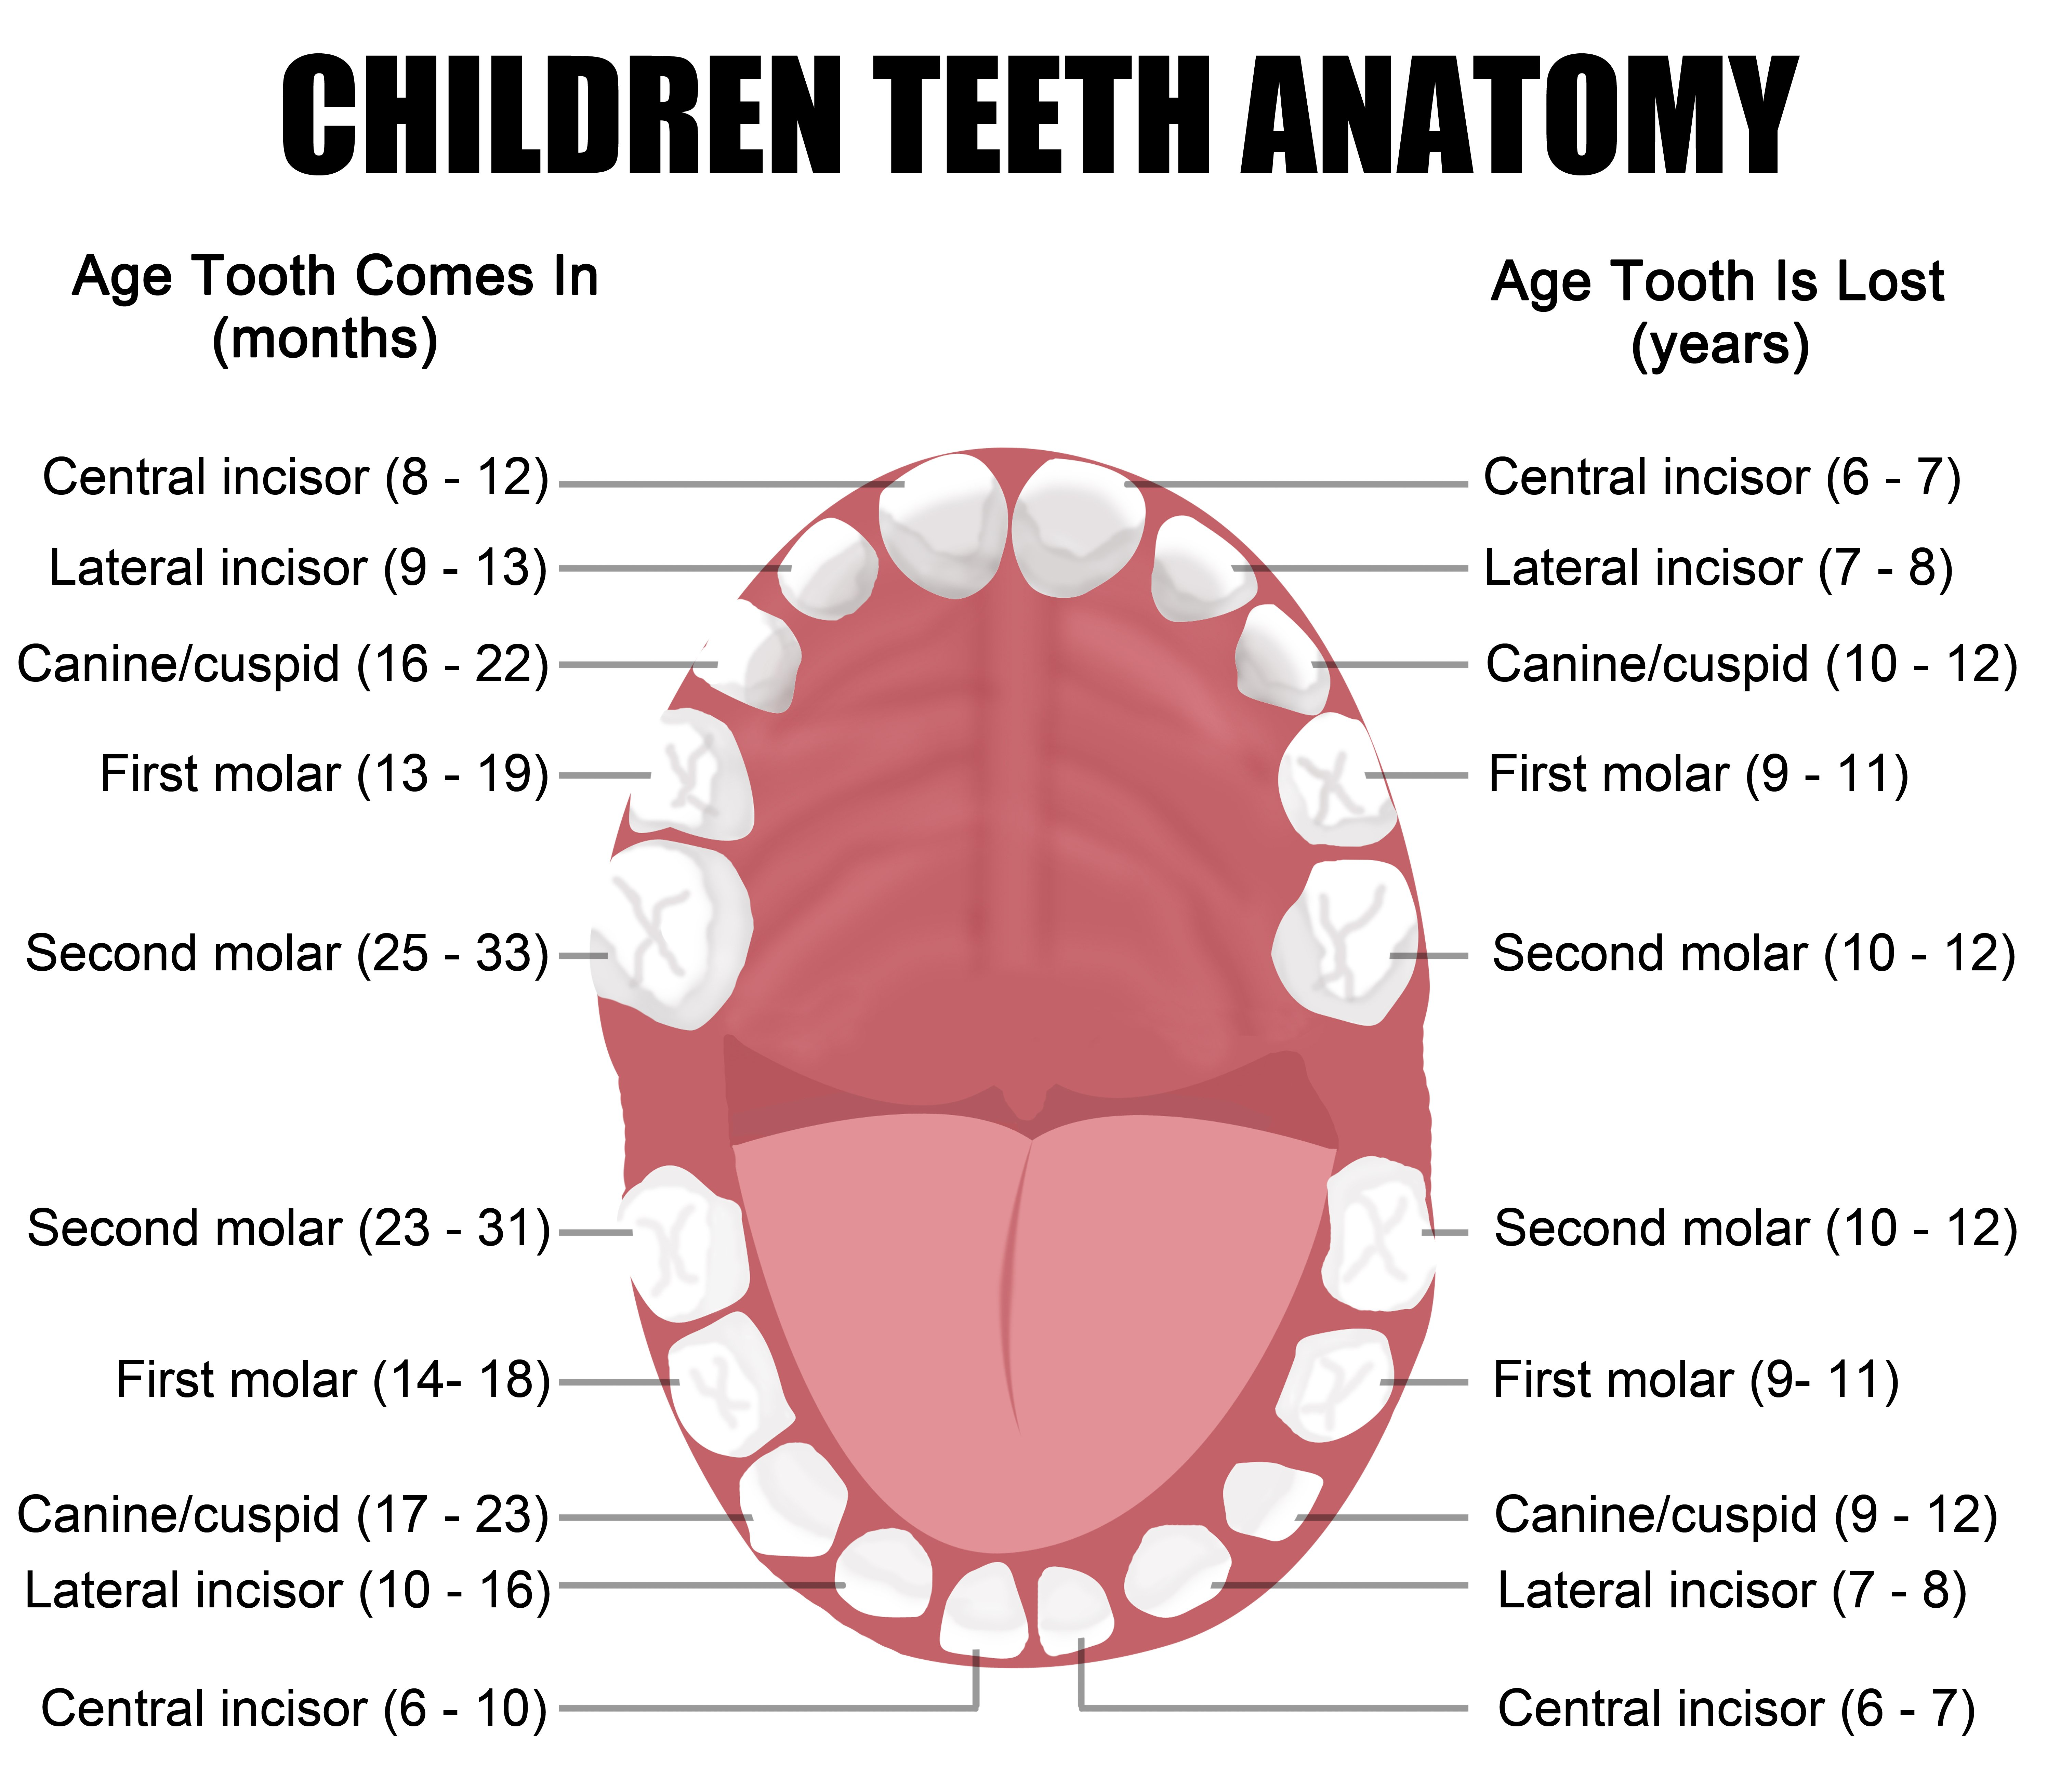 We offer dental services to children at all ages in Anchorage